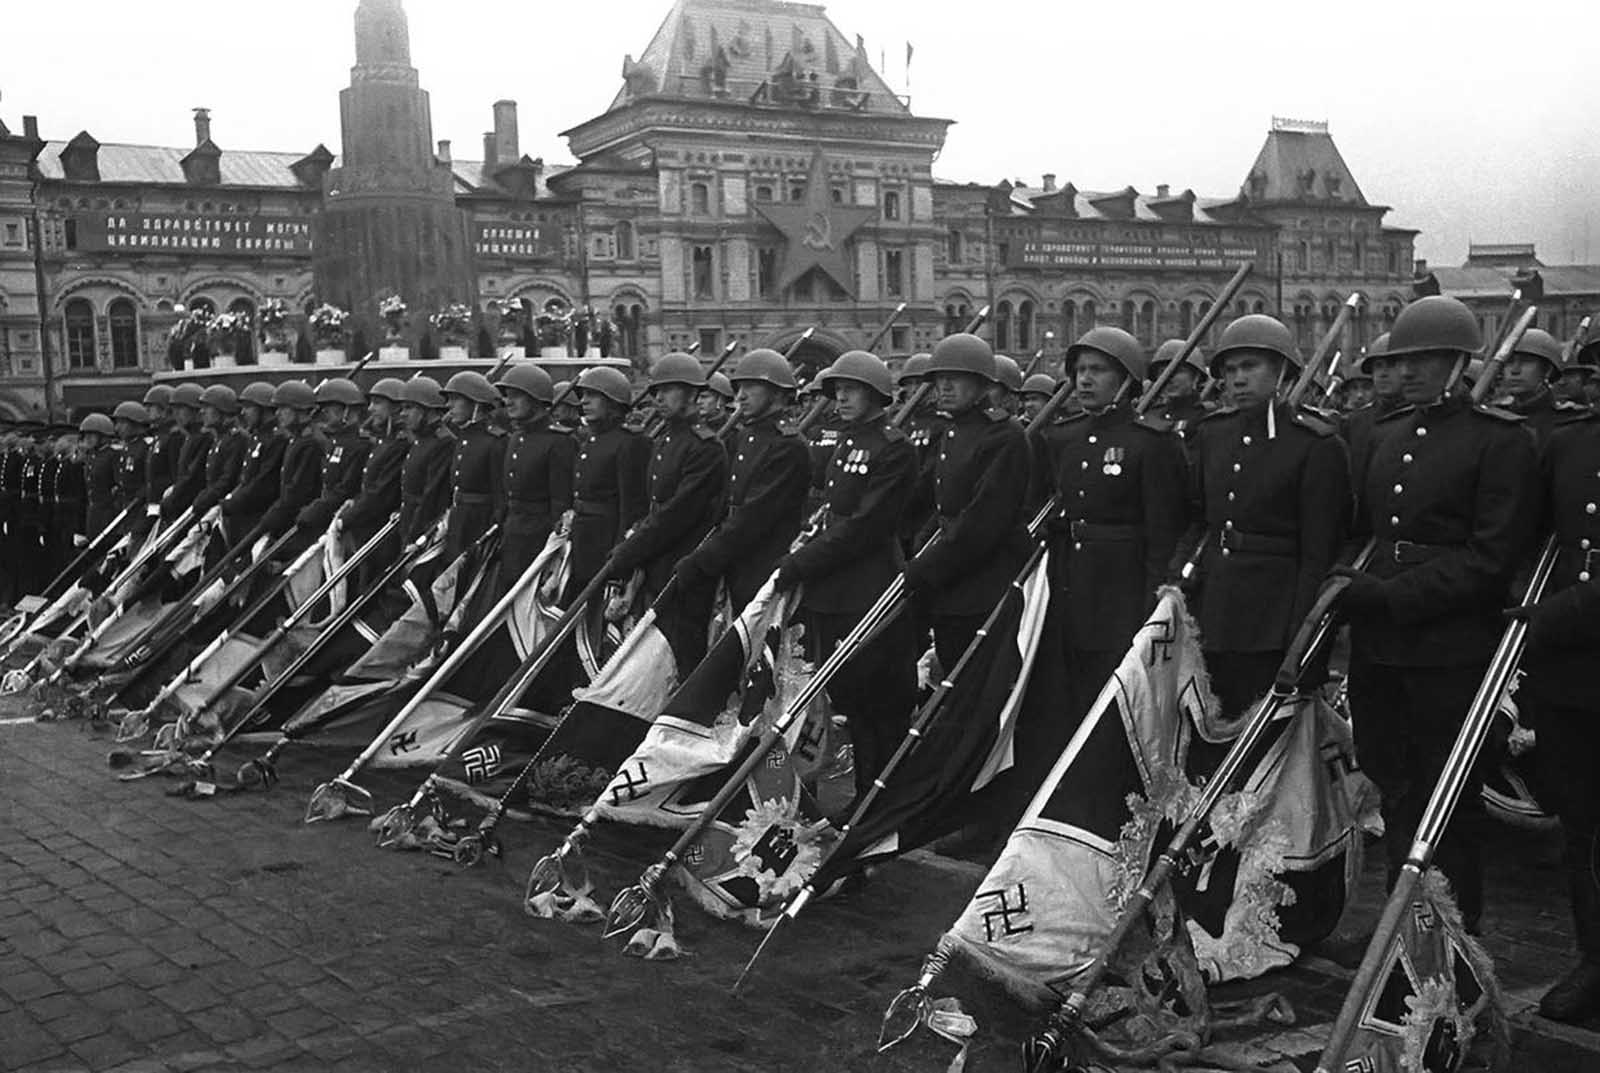 Soviet soldiers with lowered standards of the defeated Nazi forces during the Victory Day parade in Moscow, on June 24, 1945.